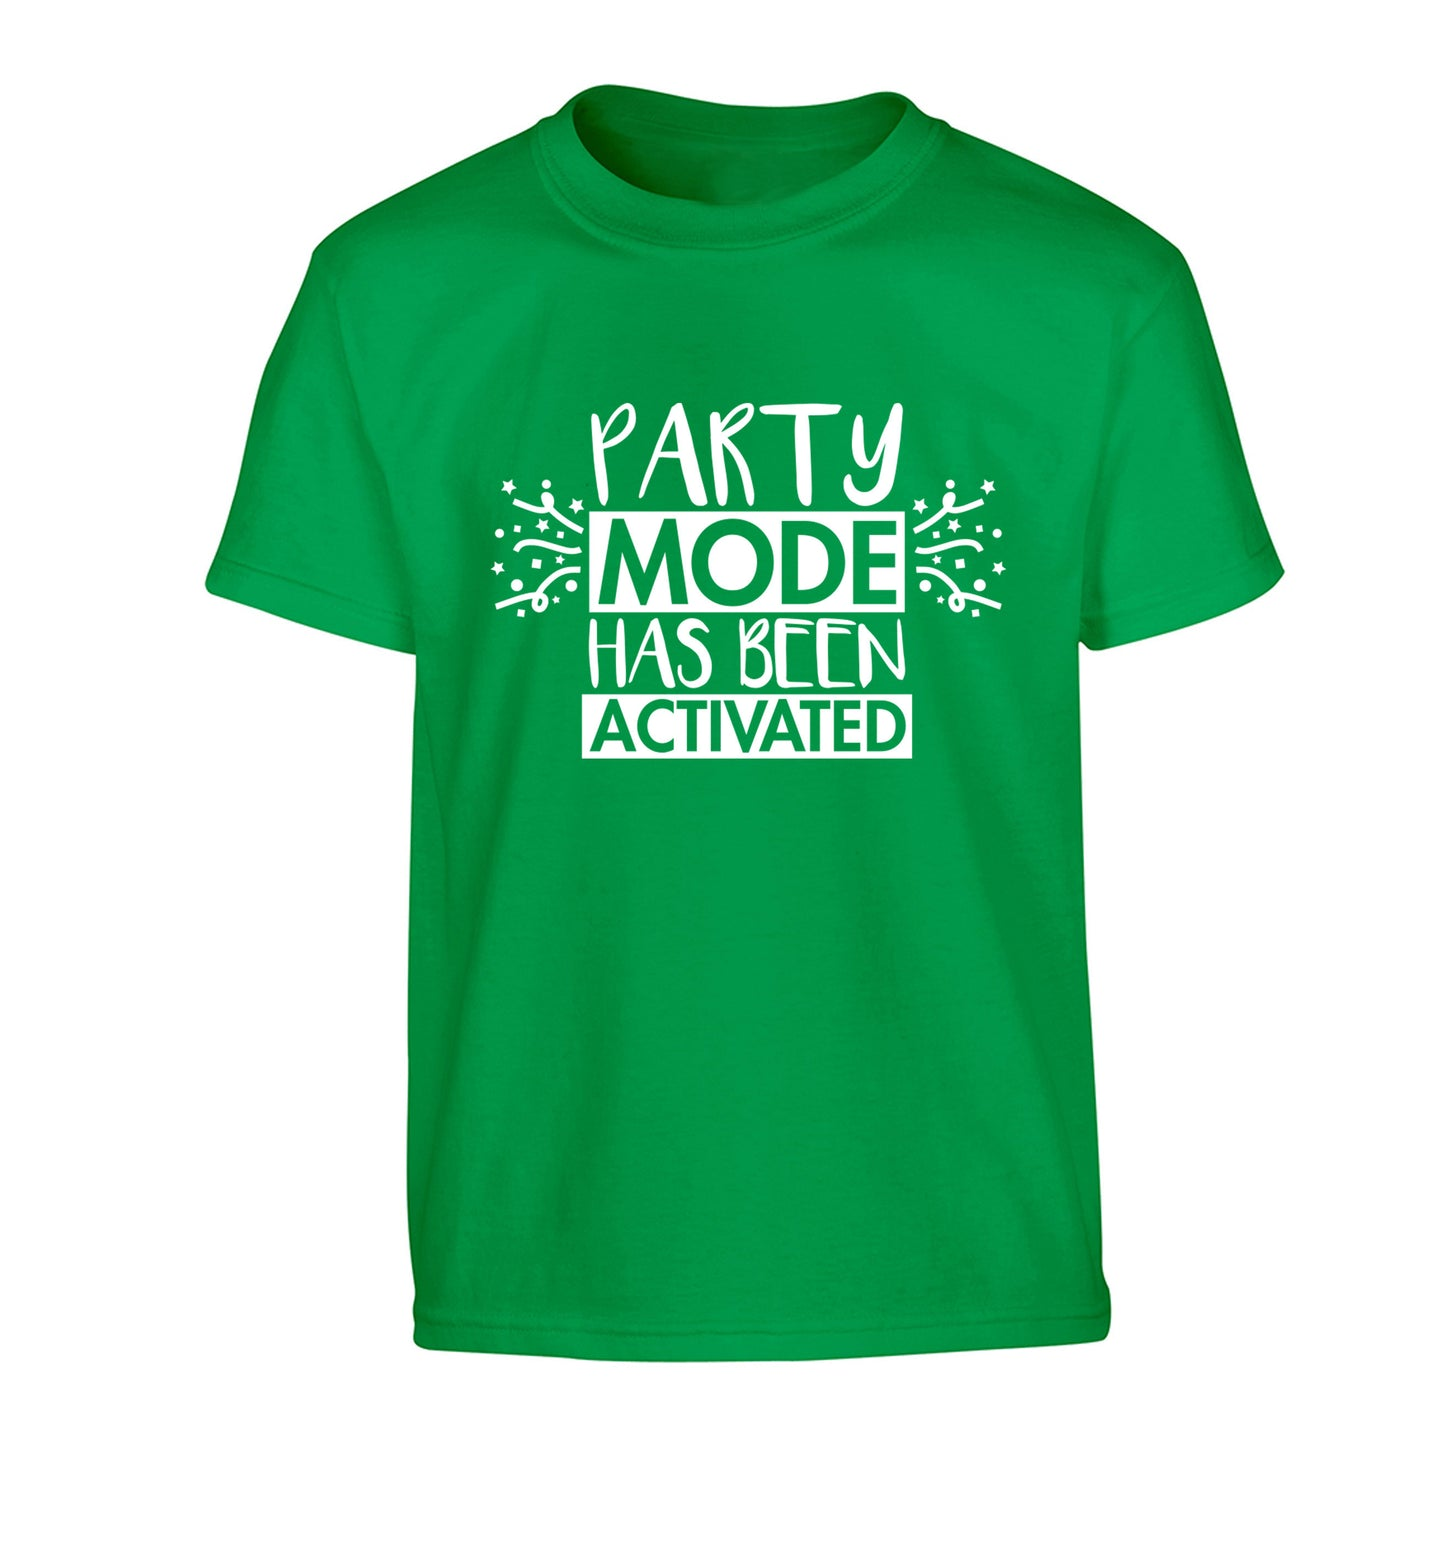 Please do not disturb party mode has been activated Children's green Tshirt 12-14 Years